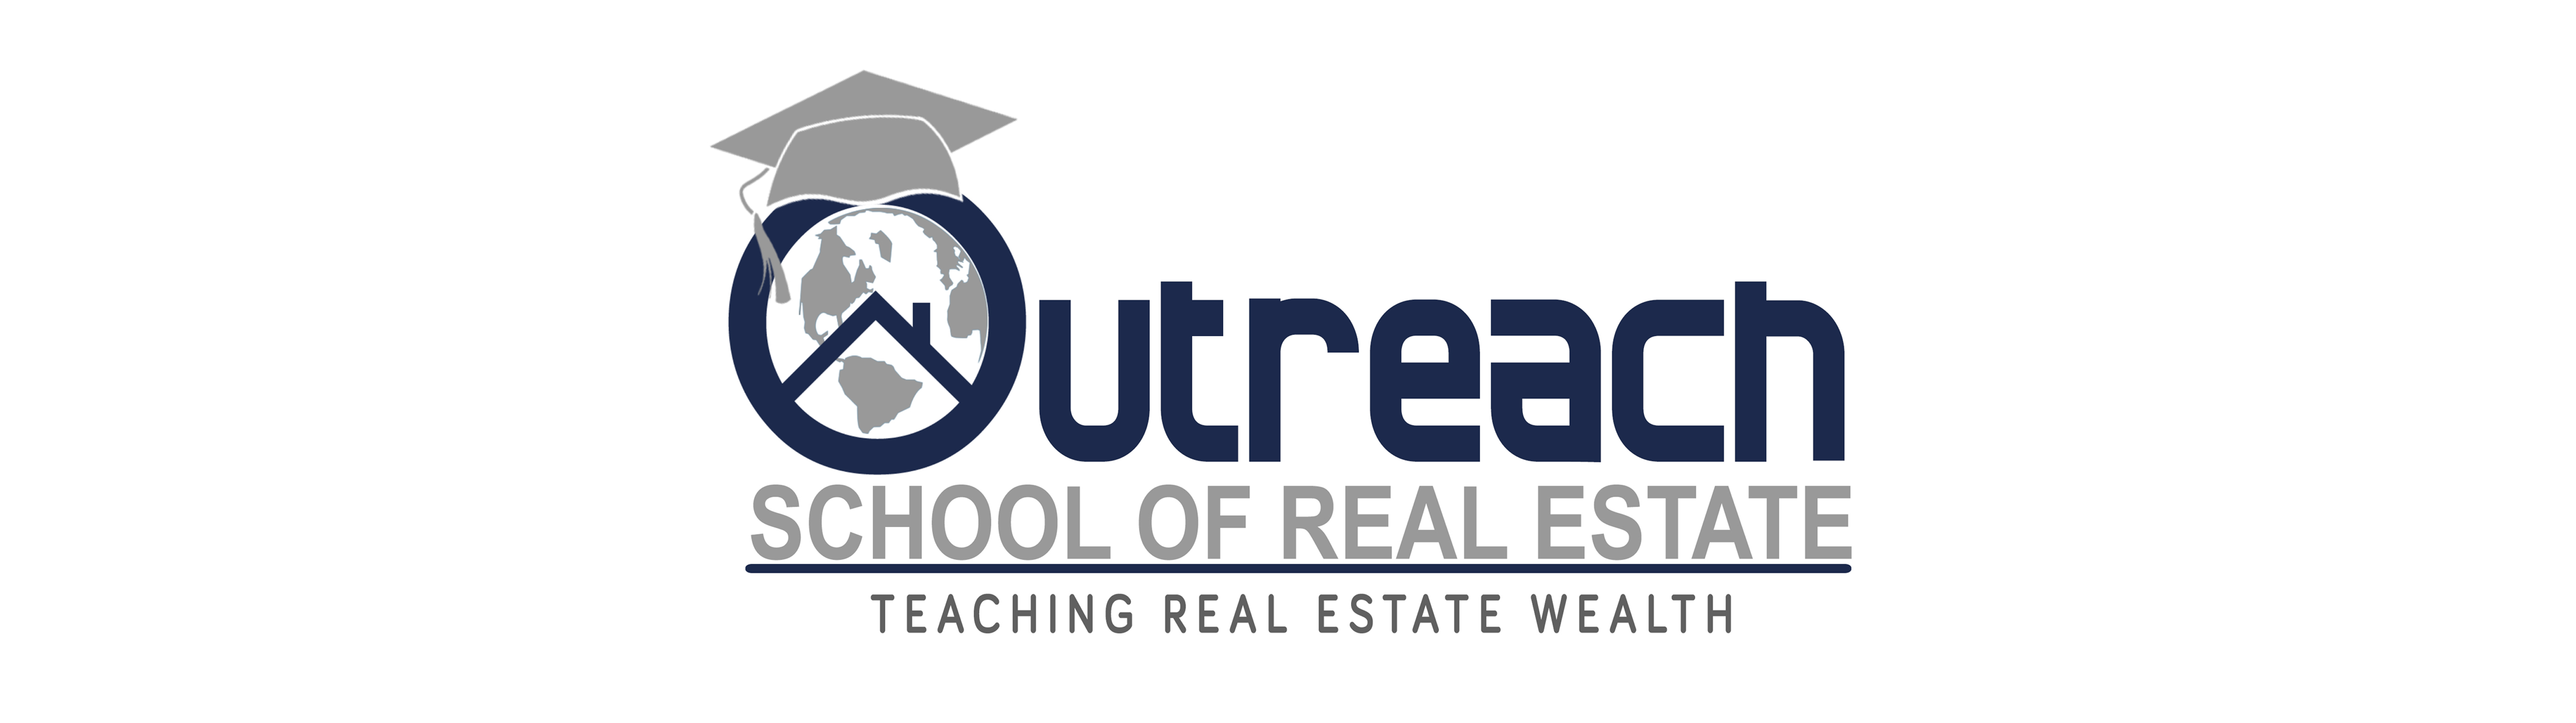 Outreach School of Real Estate